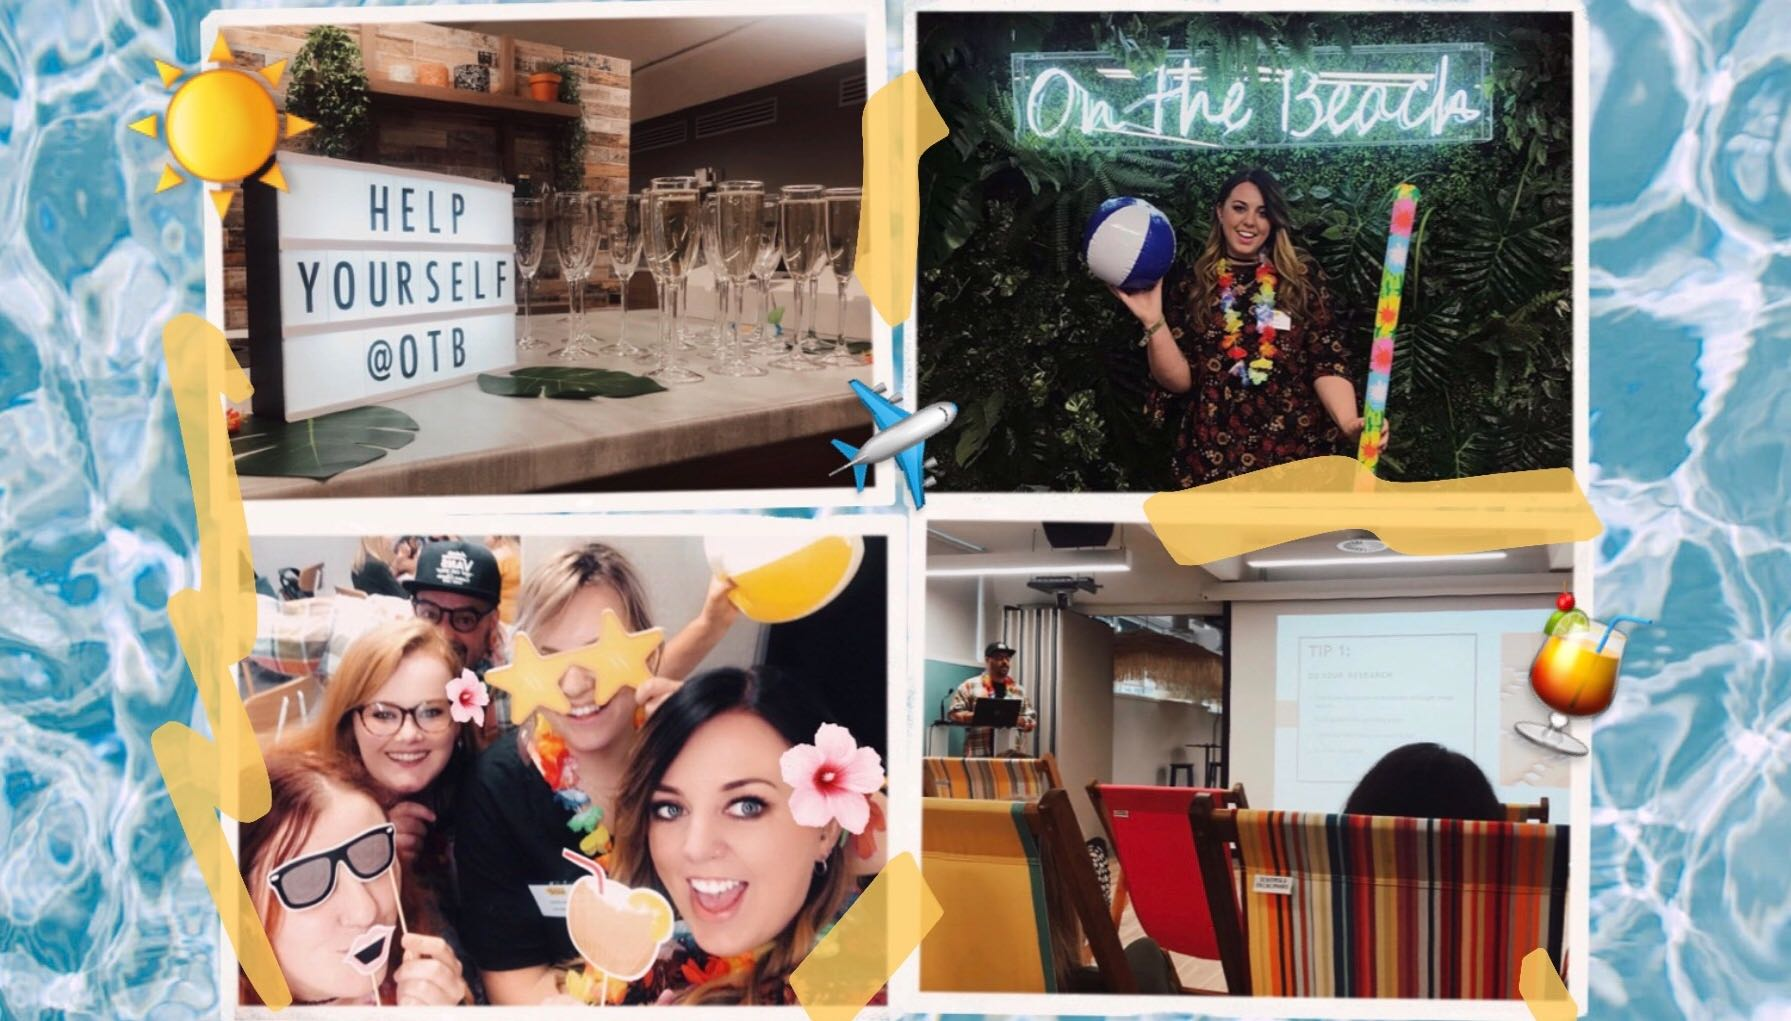 8 things that happened at On the Beach's blogger event